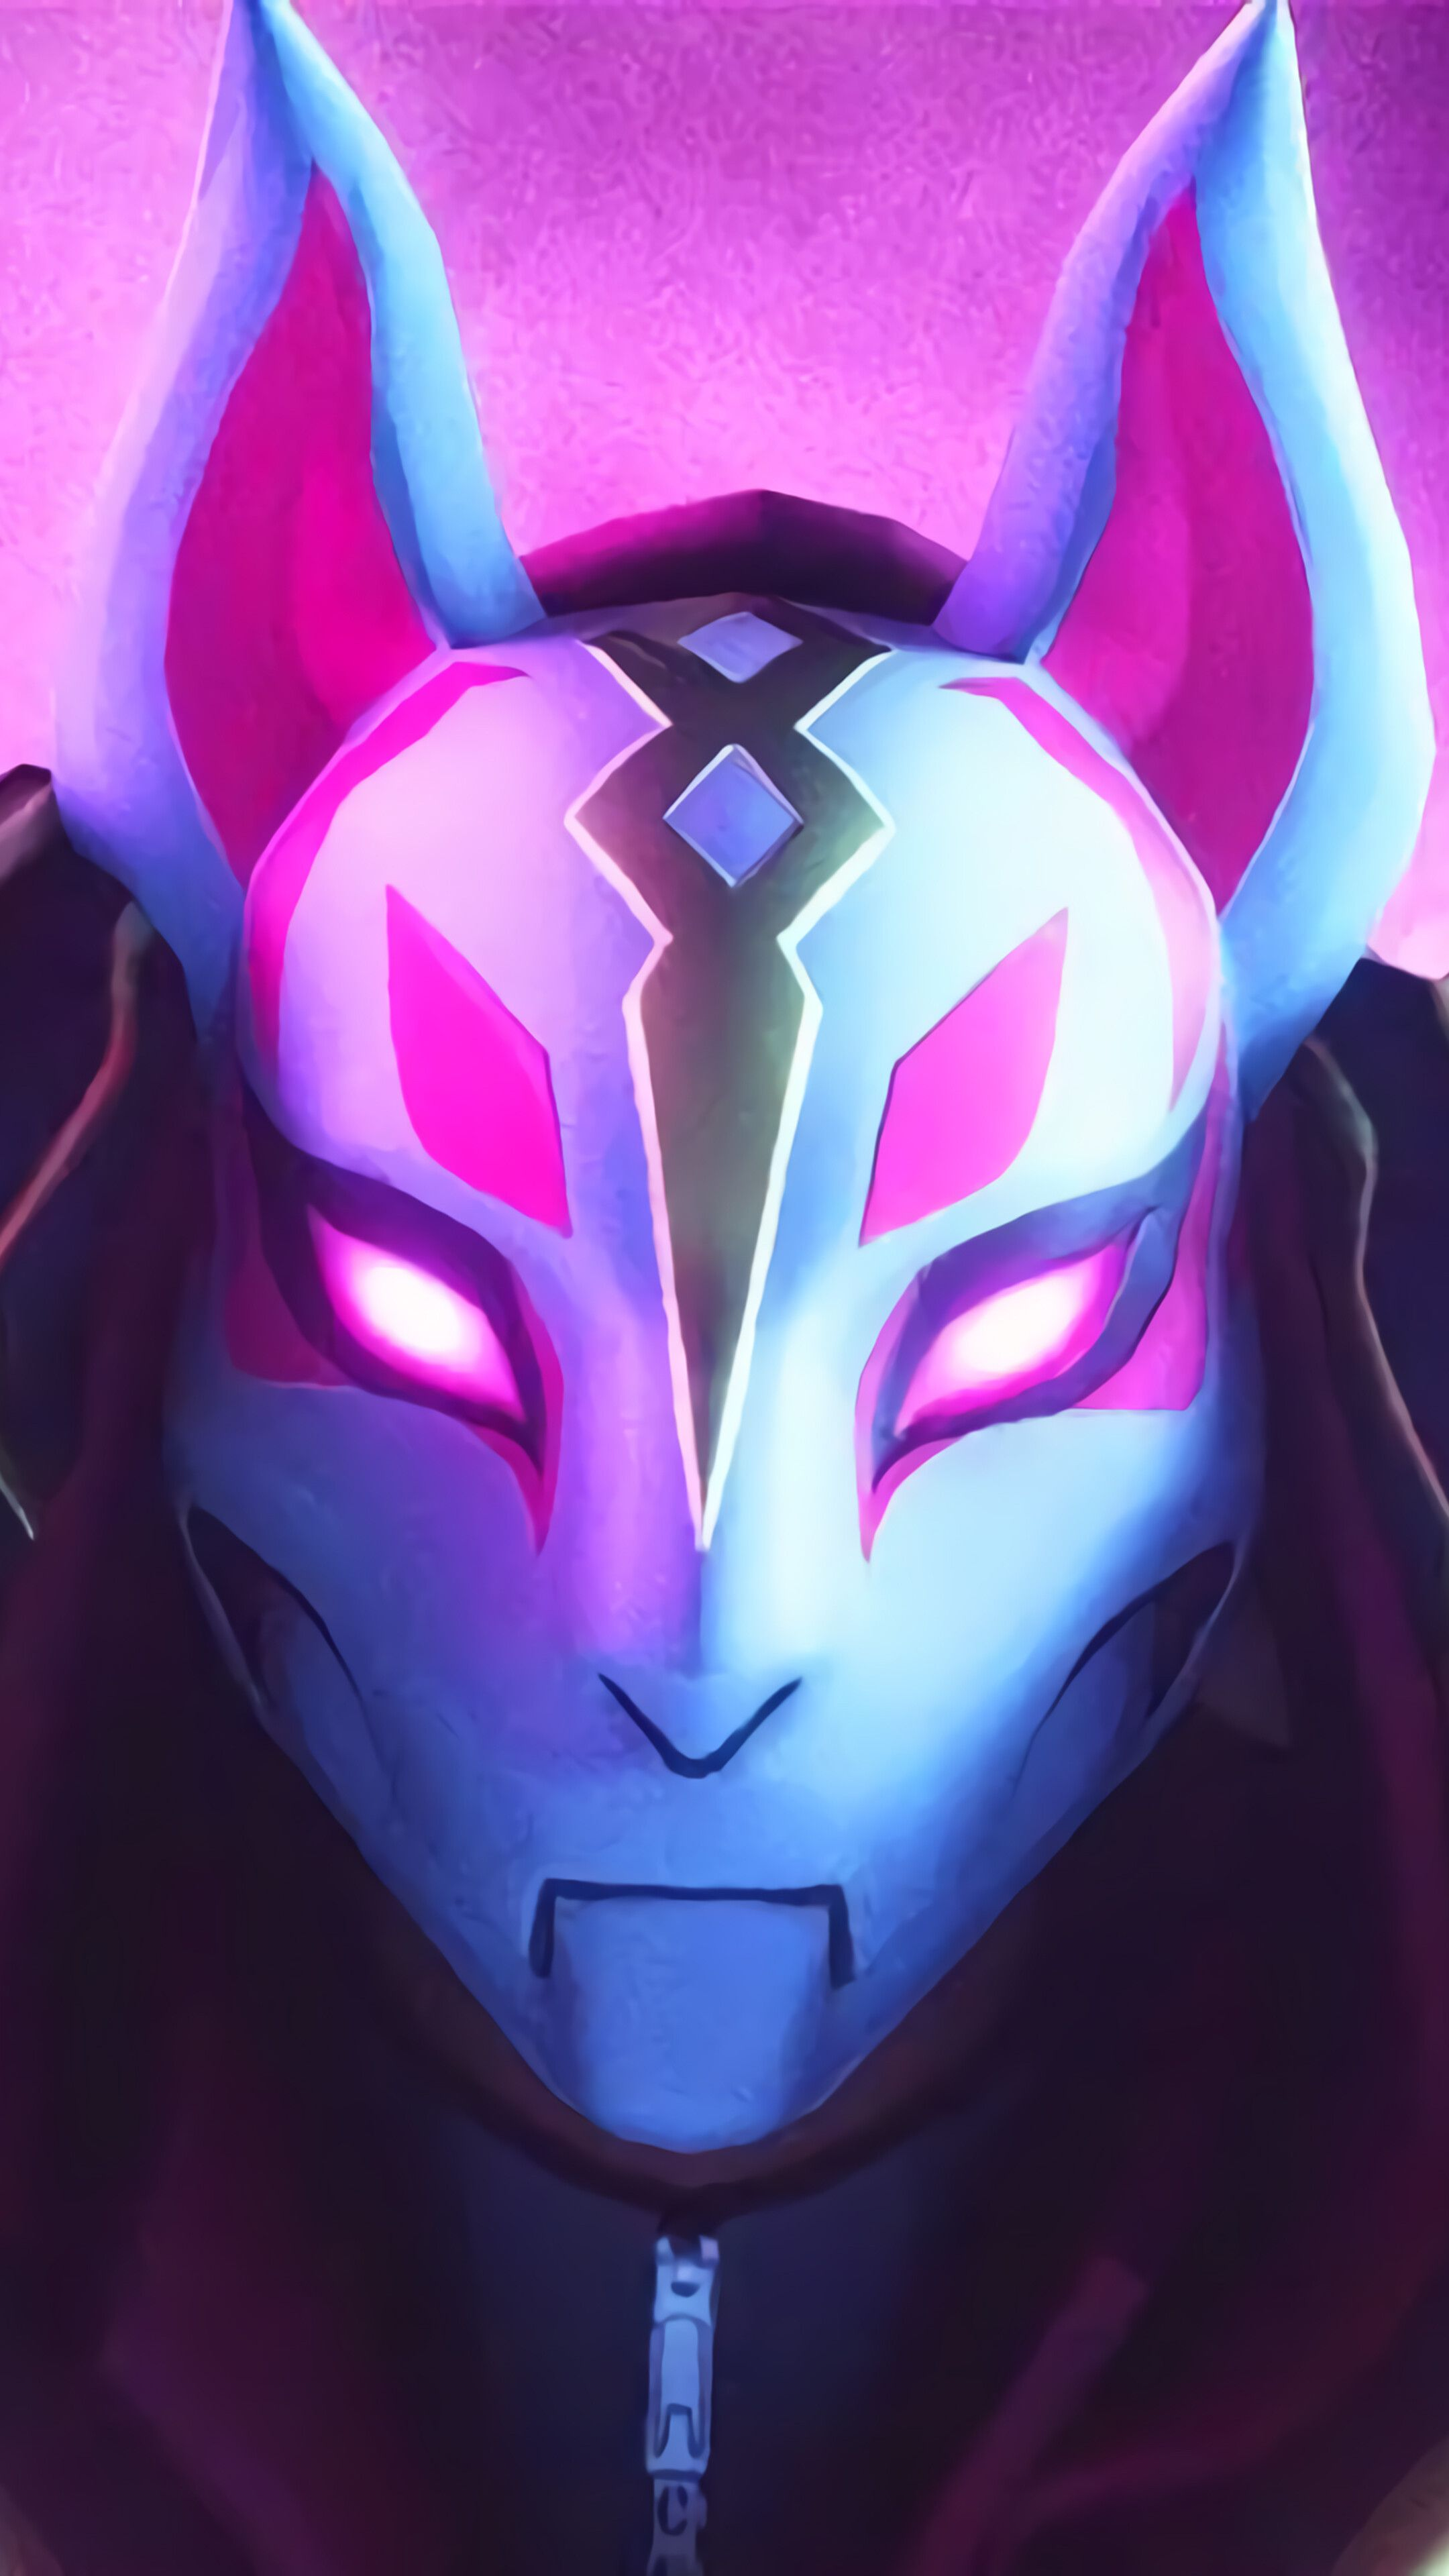 Fortnite Drift Wallpaper Phone in 2020 Gaming wallpapers